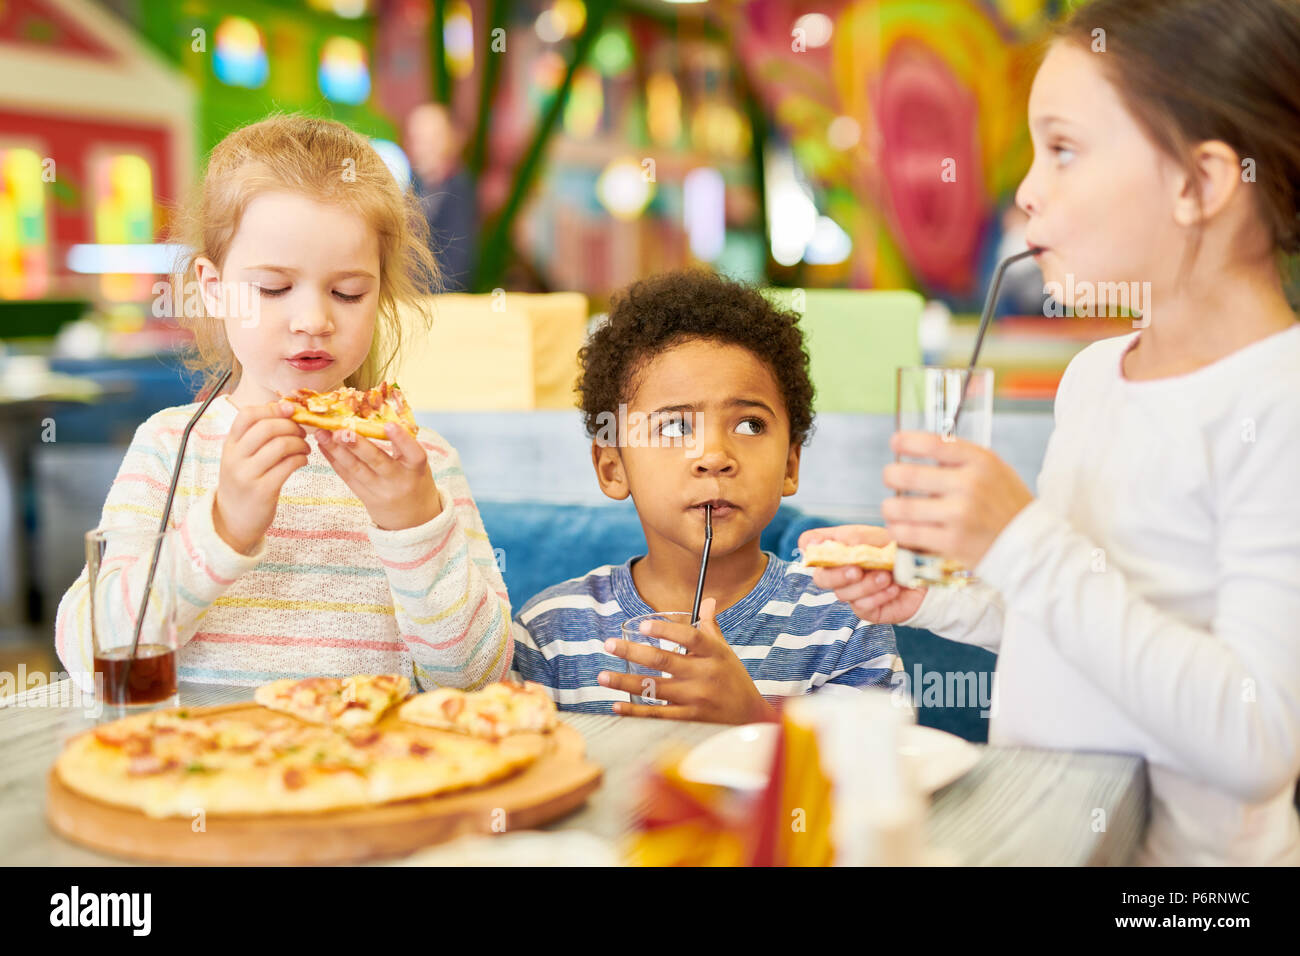 Cute Kids in Cafe Photo Stock